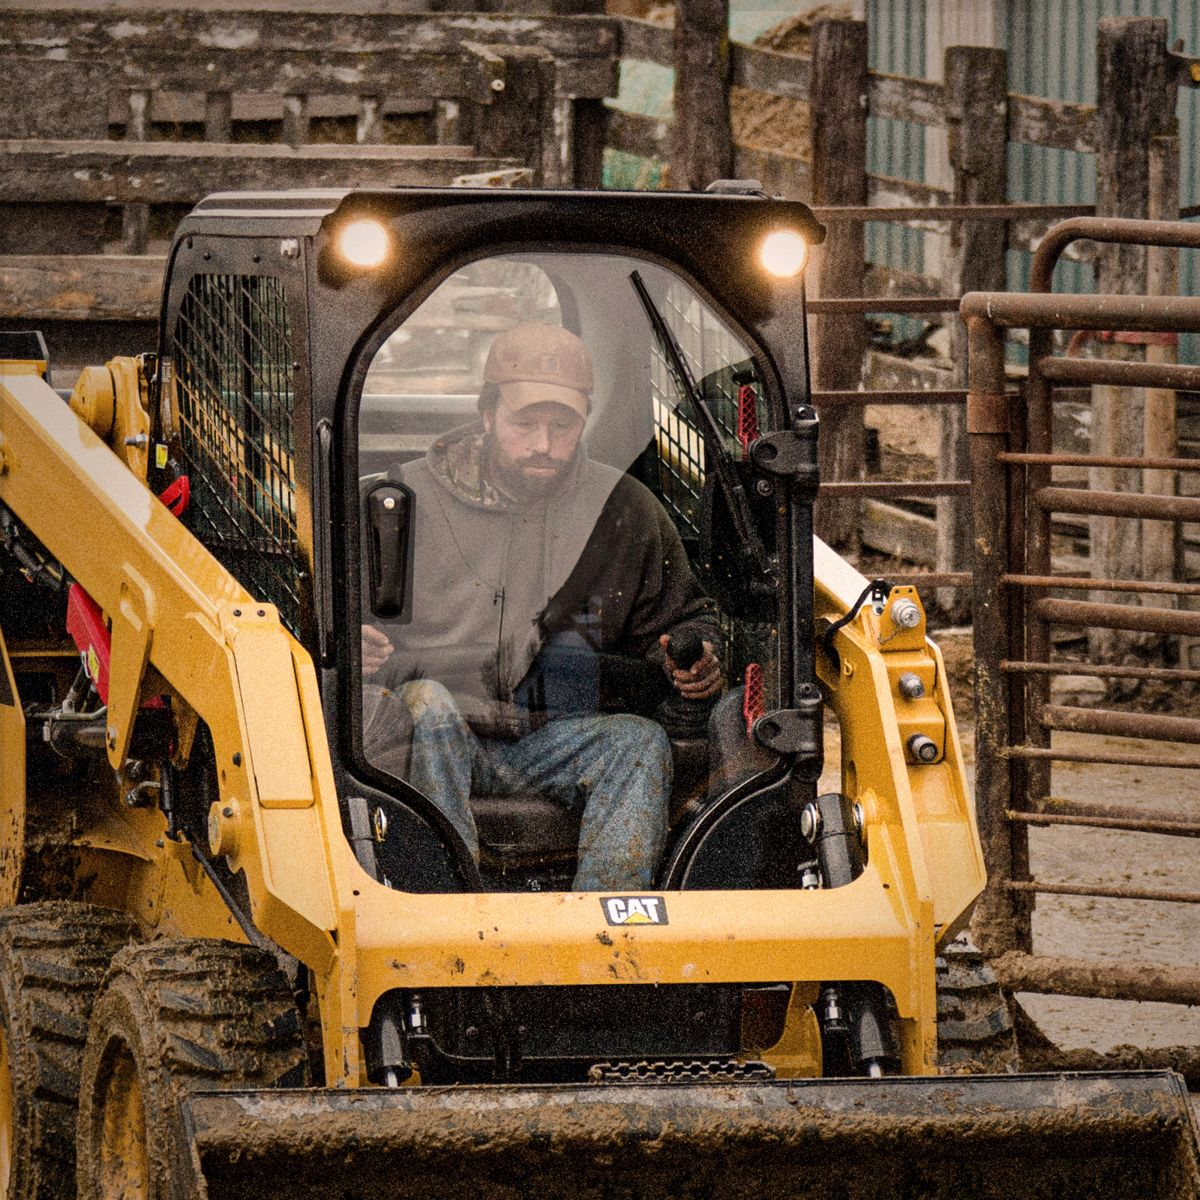 Ease-of-use and operator comfort are focal points on the new Cat® D3 Series Skid Steer and Compact Track Loaders.